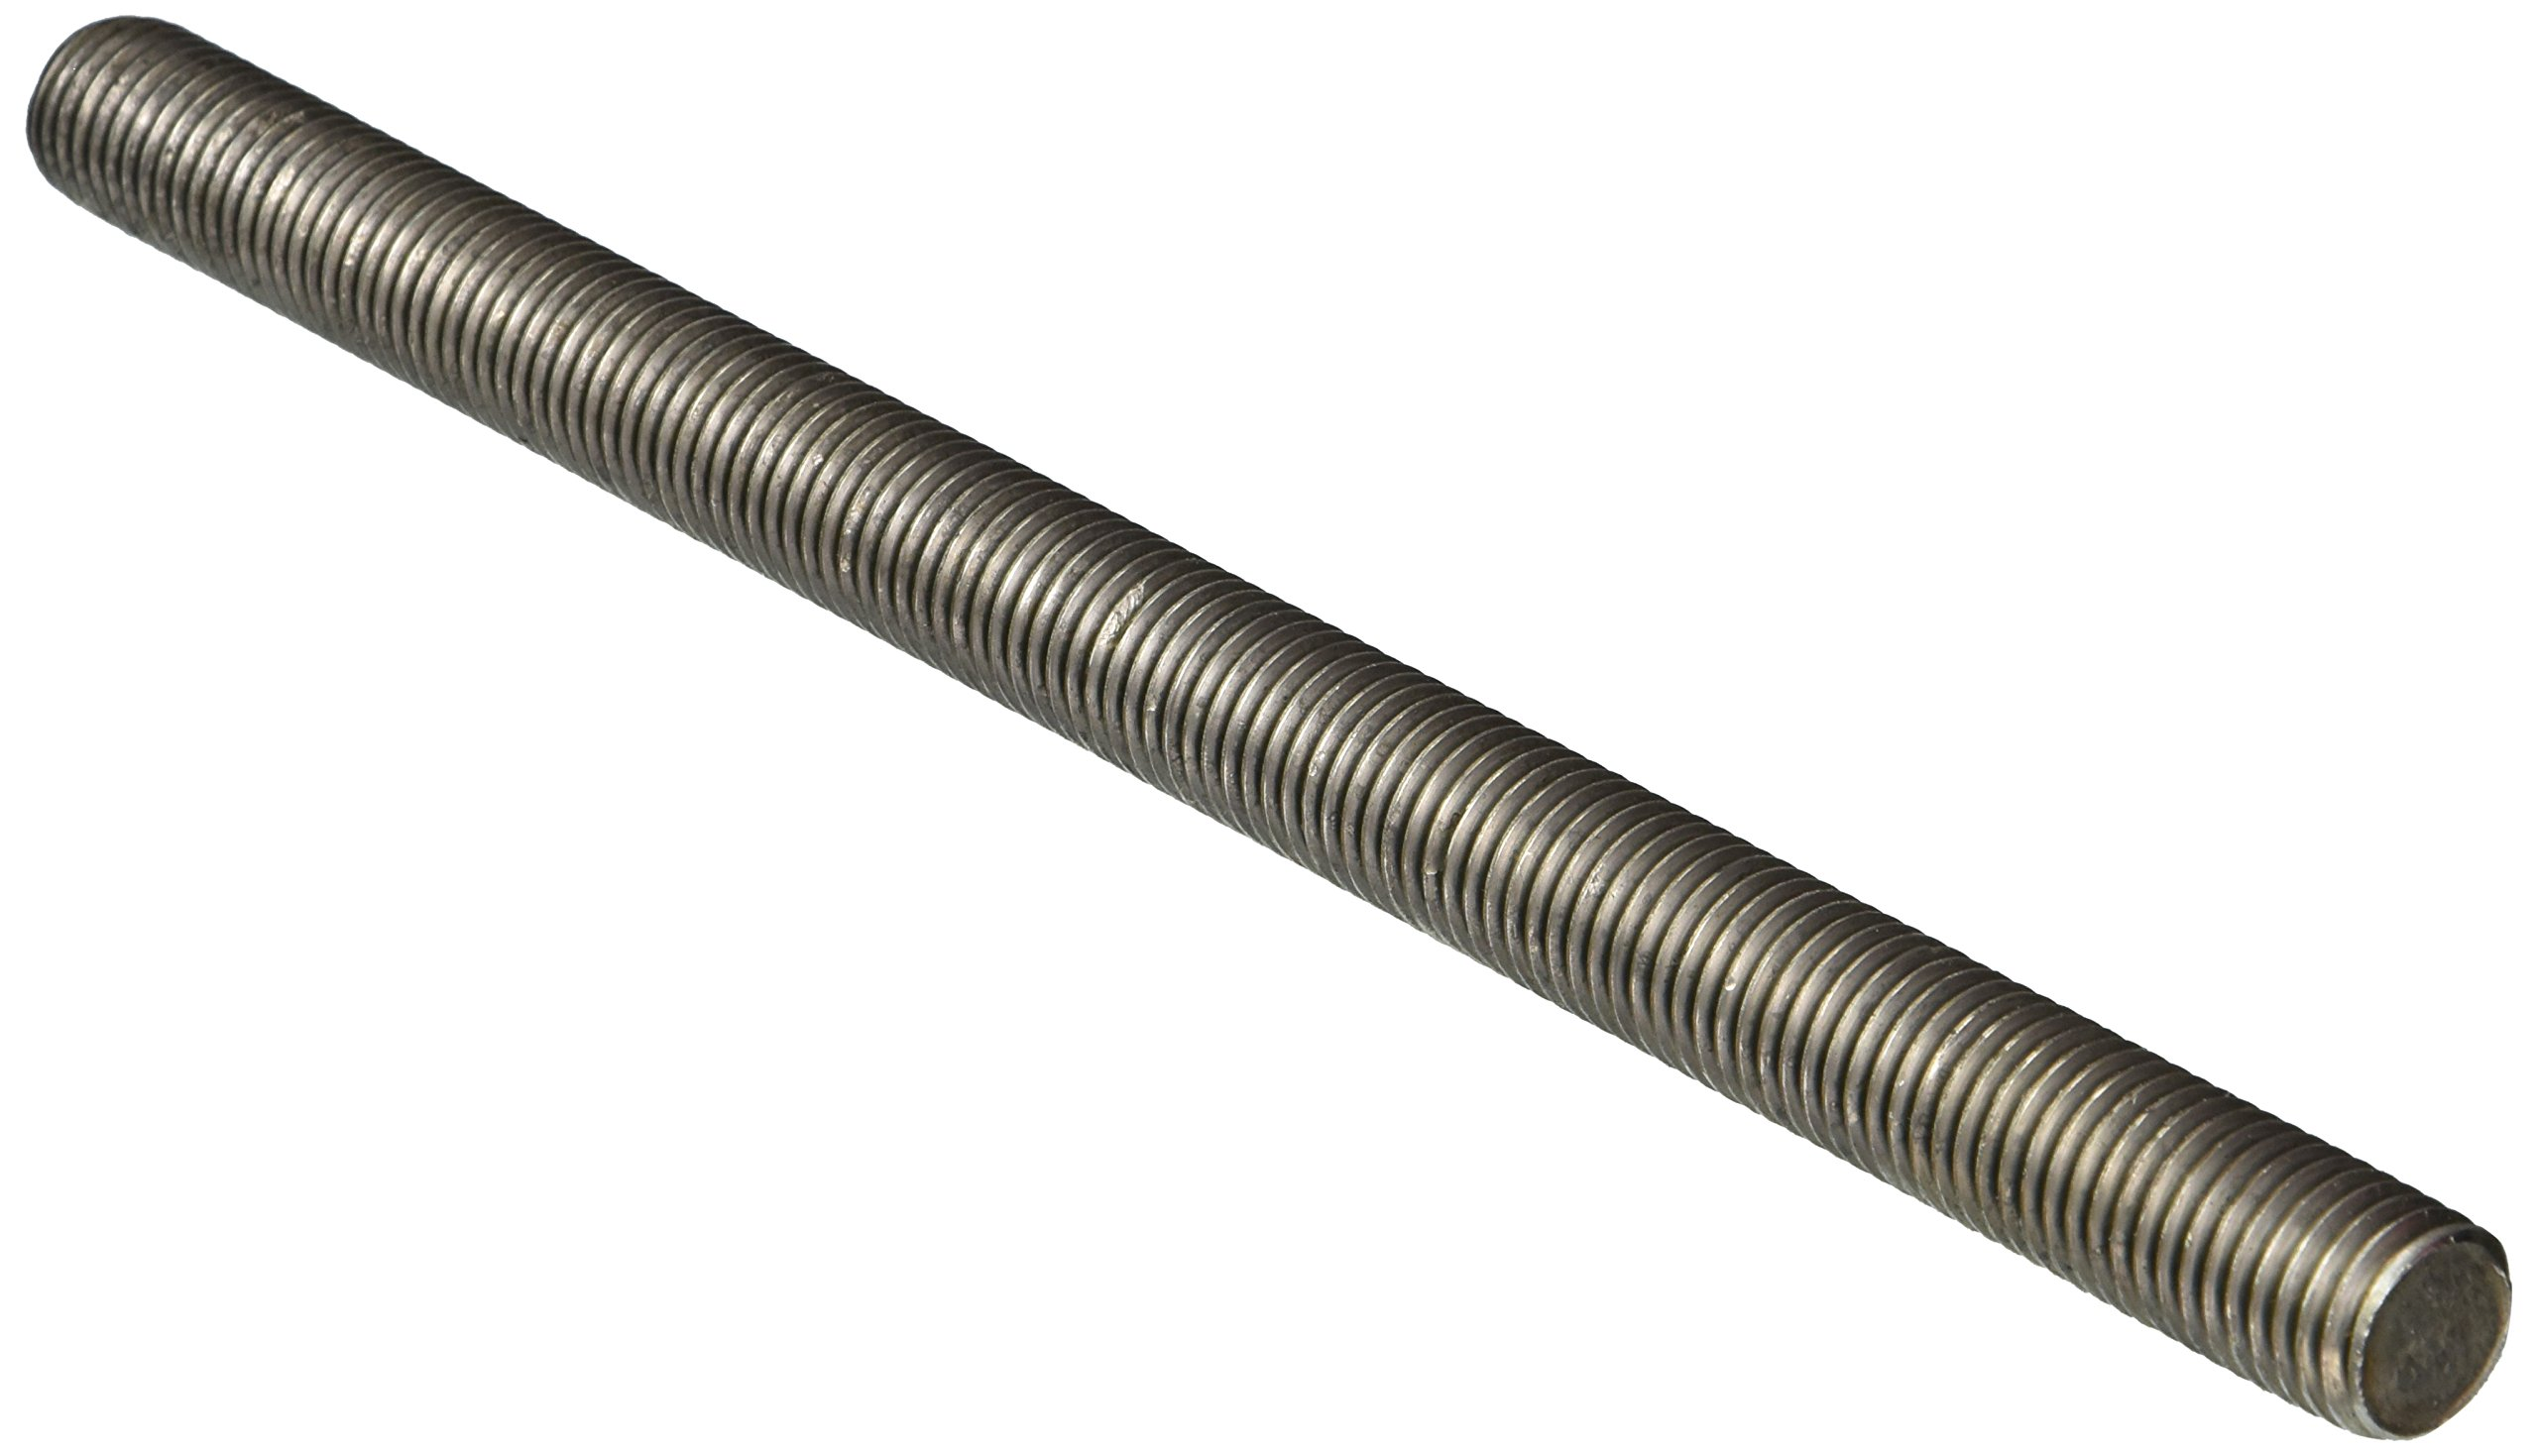 18-8 Stainless Steel Fully Threaded Rod, 3/4''-10 Thread Size, 12'' Length, Right Hand Threads